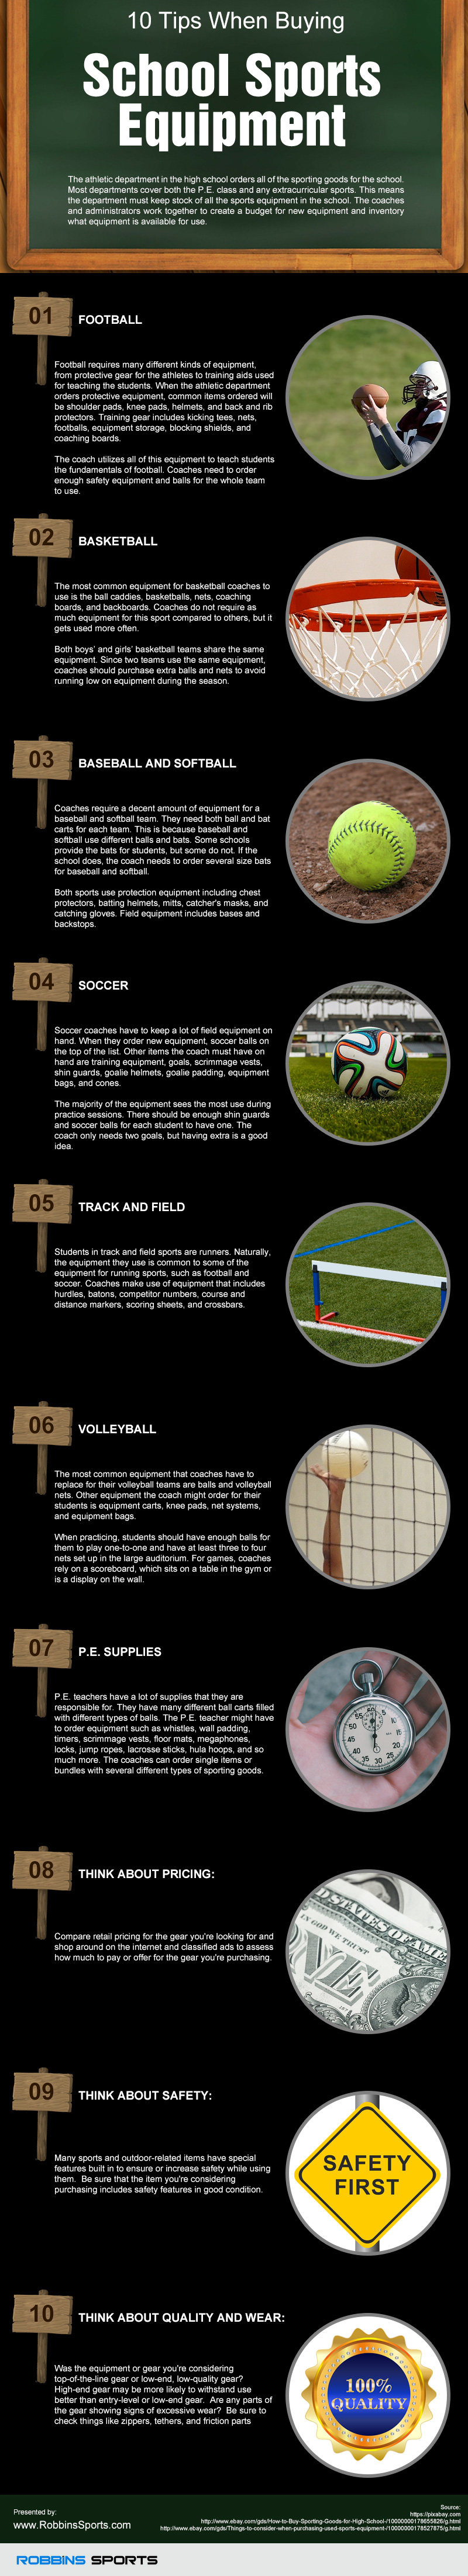 school-sports-equipment-buying-guide.jpg